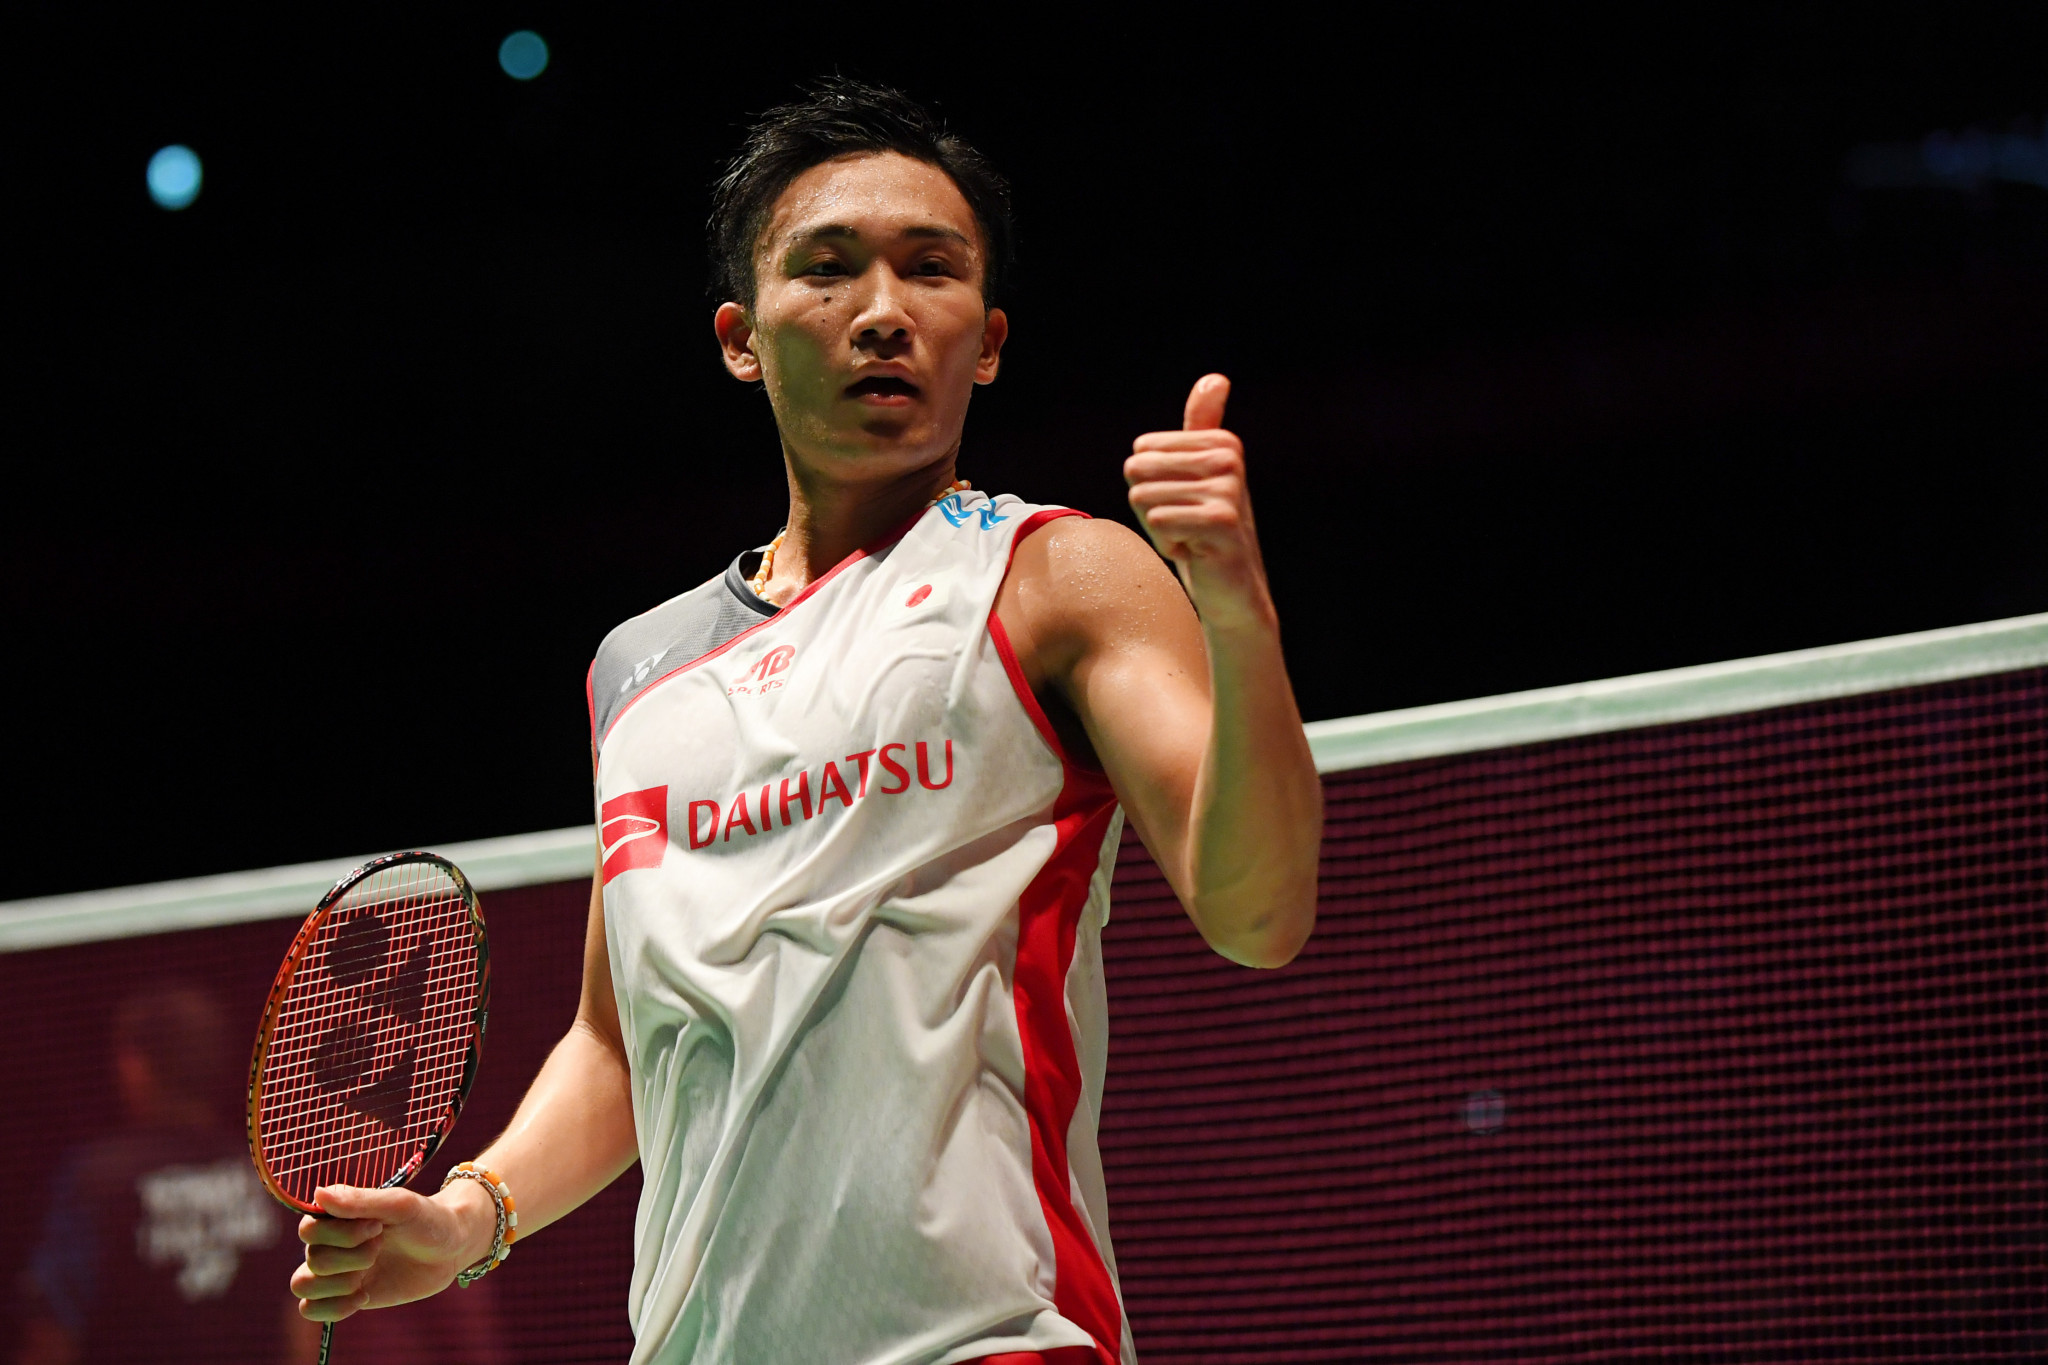 Kento Momota won the first competition he played in since a traffic accident in January ©Getty Images